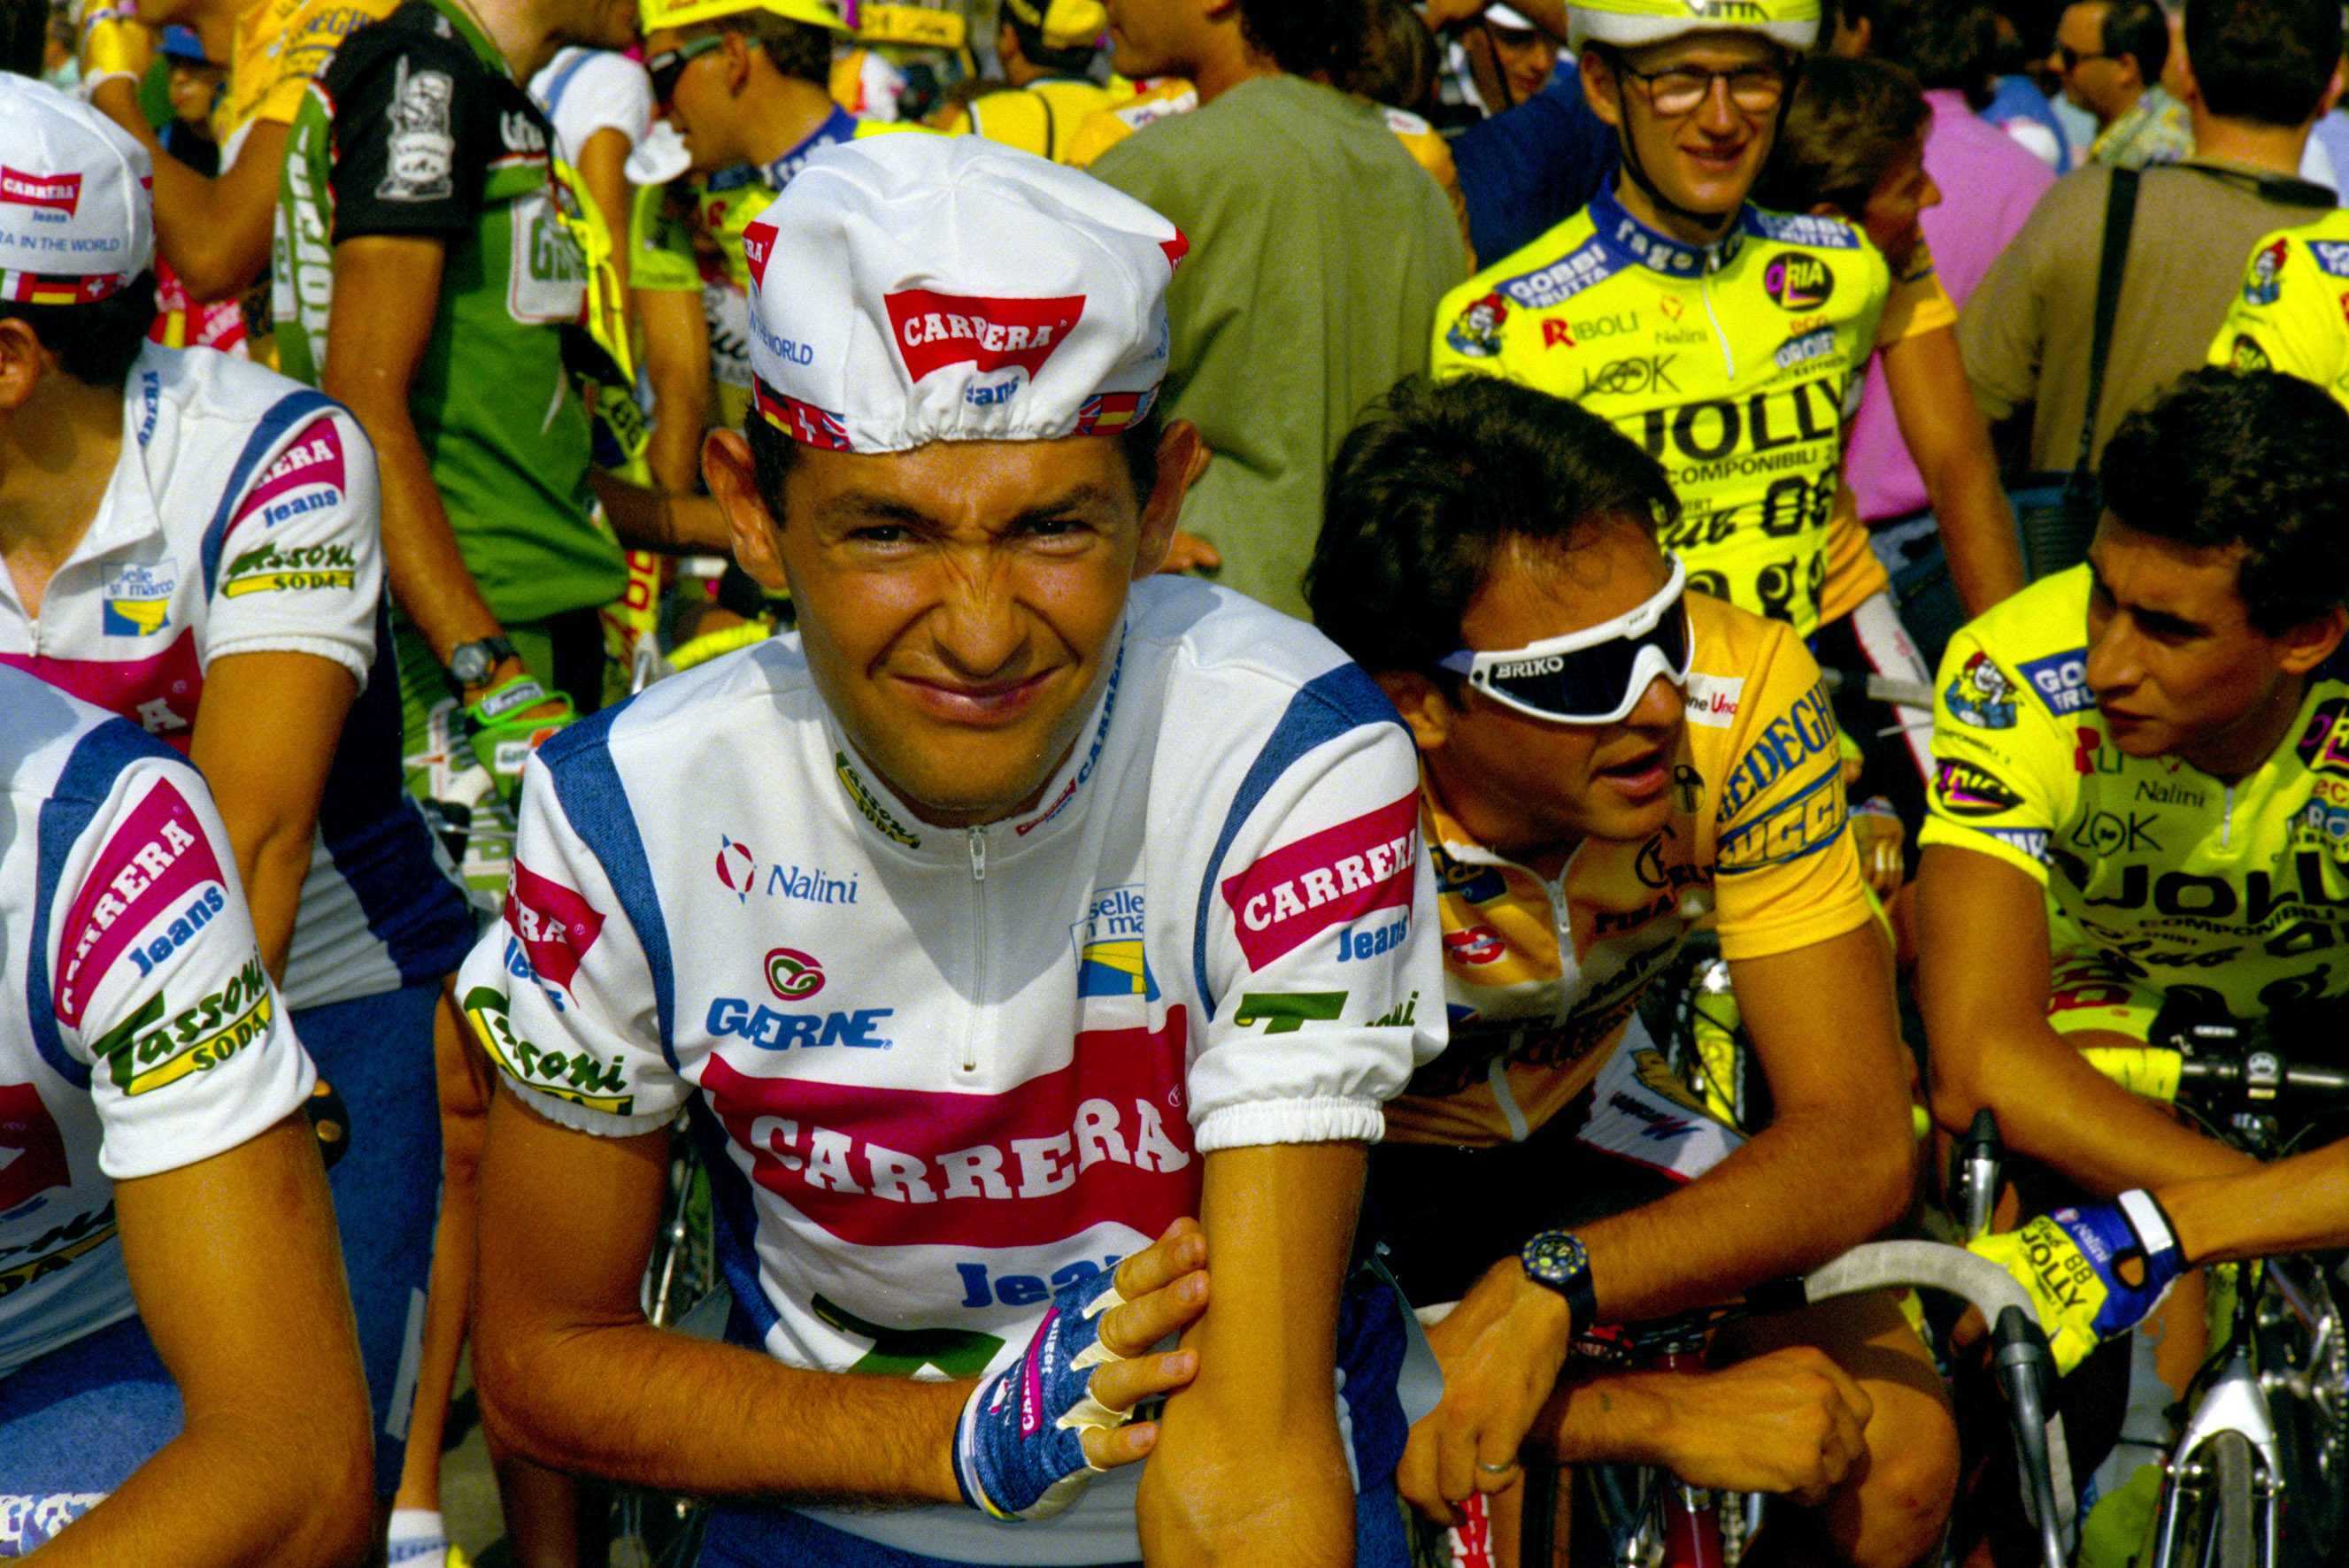 Marco Pantani lines up for his professional debut in Camaiore in 1992.